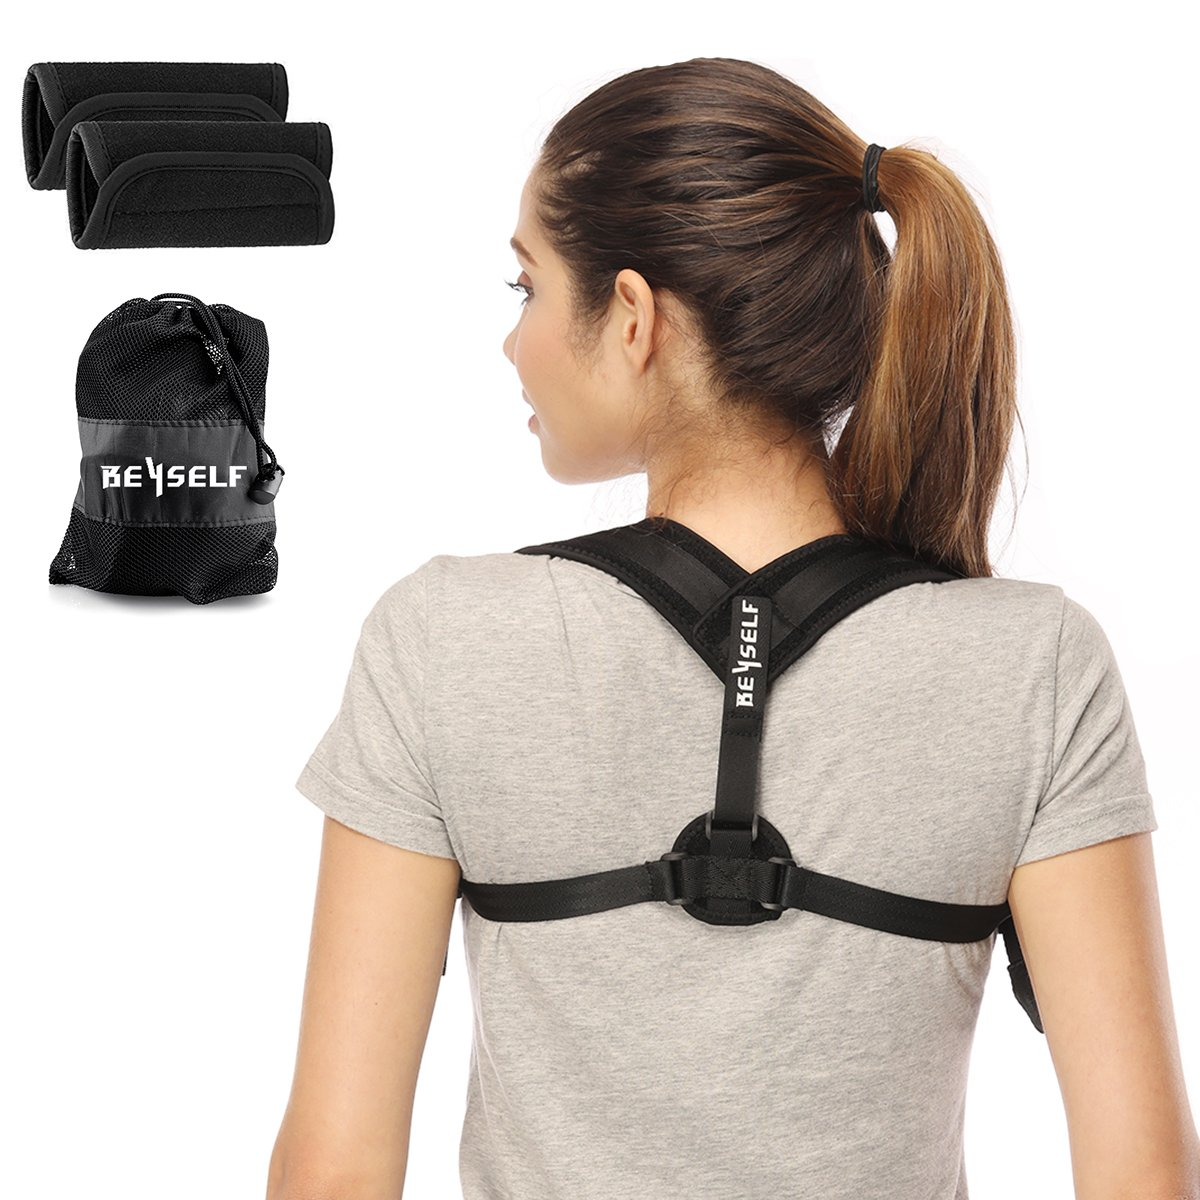 Neiup Back Posture Corrector for Women & Men - Adjustable Posture Correct Brace for Slouching & Hunching - Discreet Design - Detachable Comfortable Armpit Pads, Thoracic Kyphosis, Injury Rehab